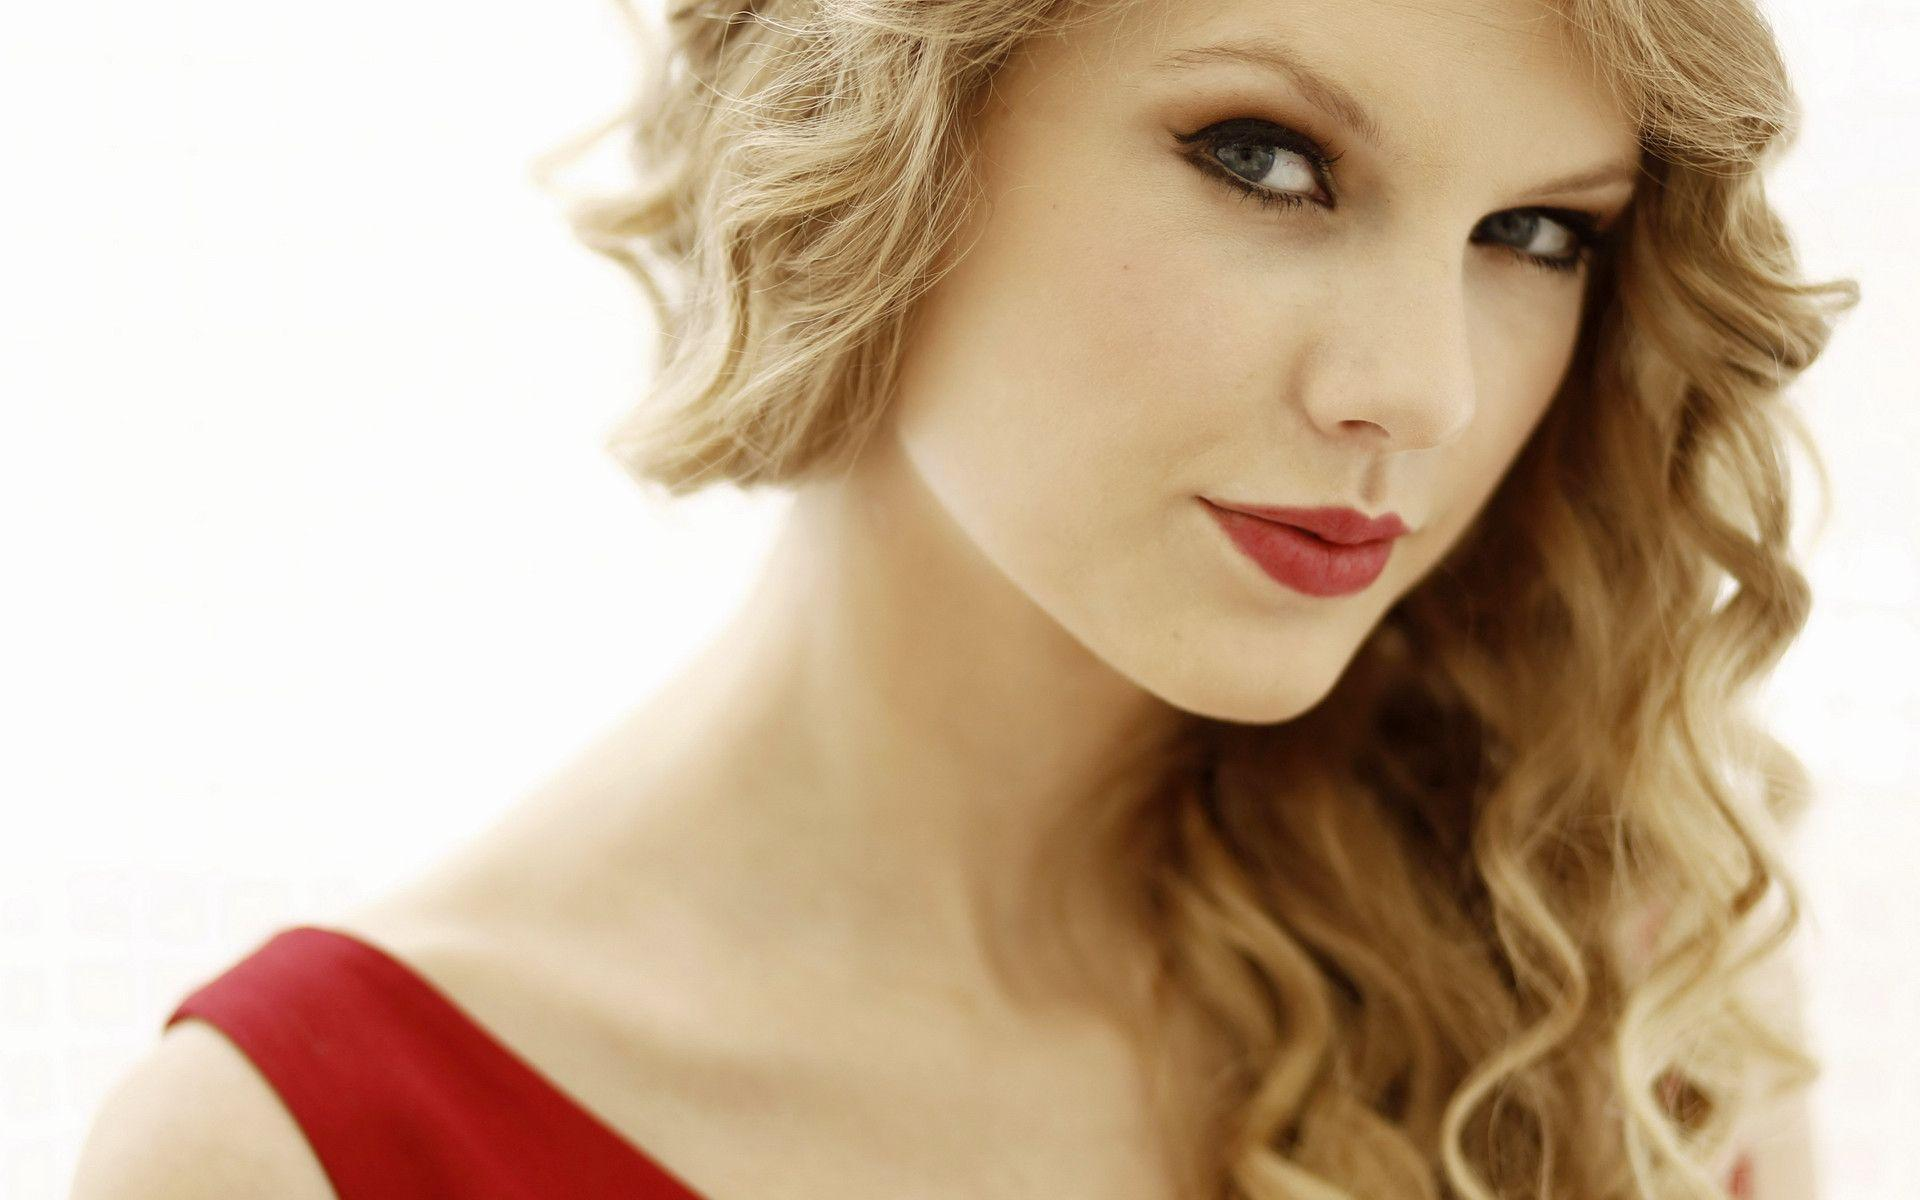 Taylor Swift Backgrounds - Wallpaper Cave